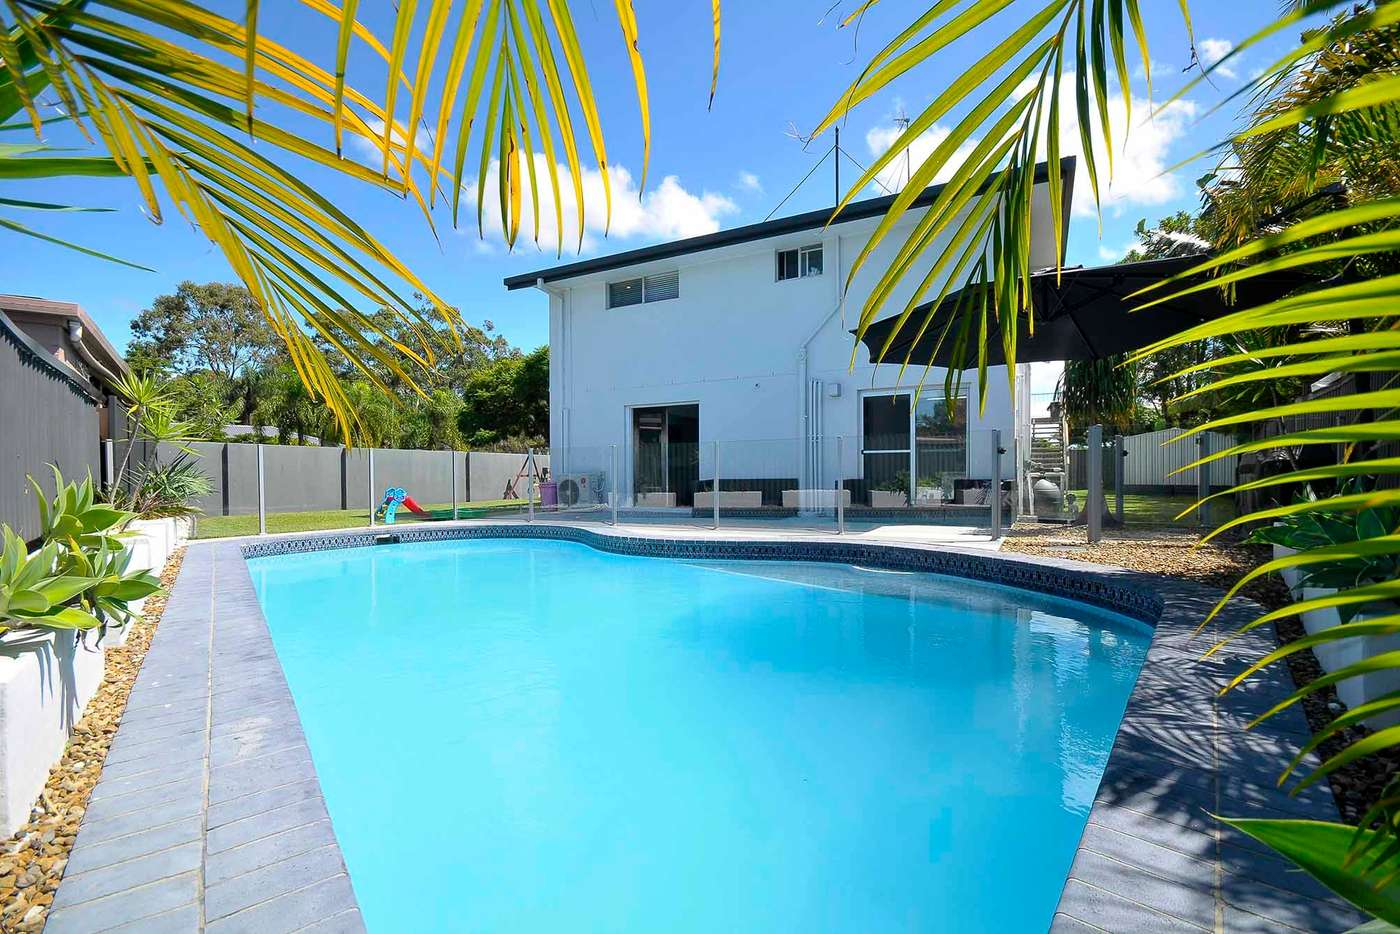 Main view of Homely house listing, 5 Spindle Street, Palm Beach QLD 4221